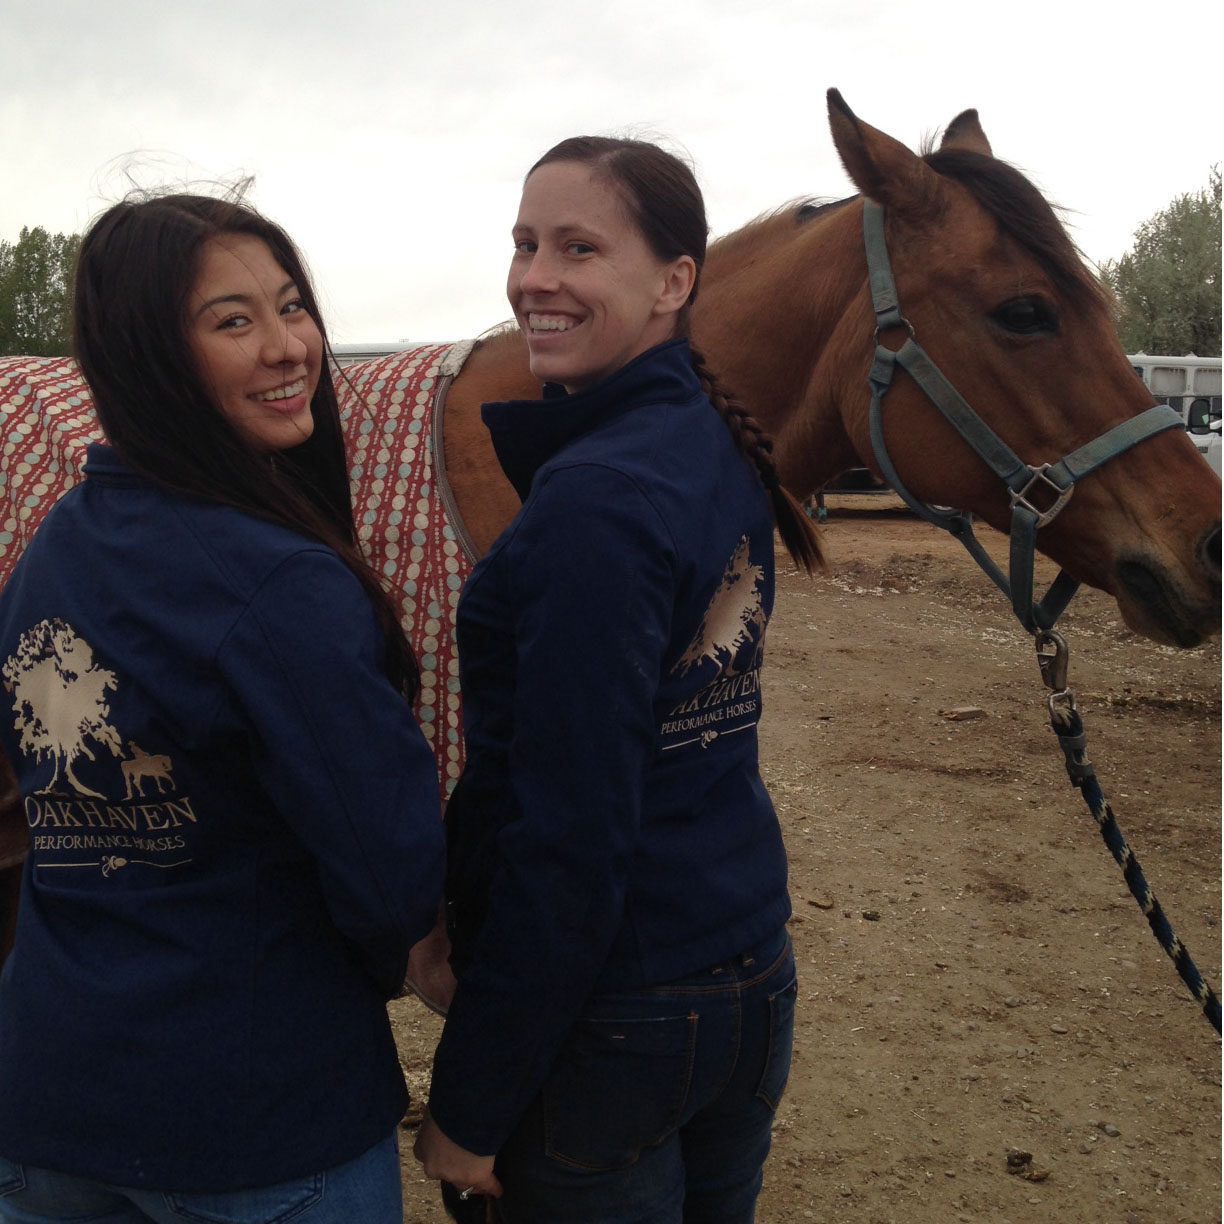 Showing off our custom embroidered OHPH jackets!